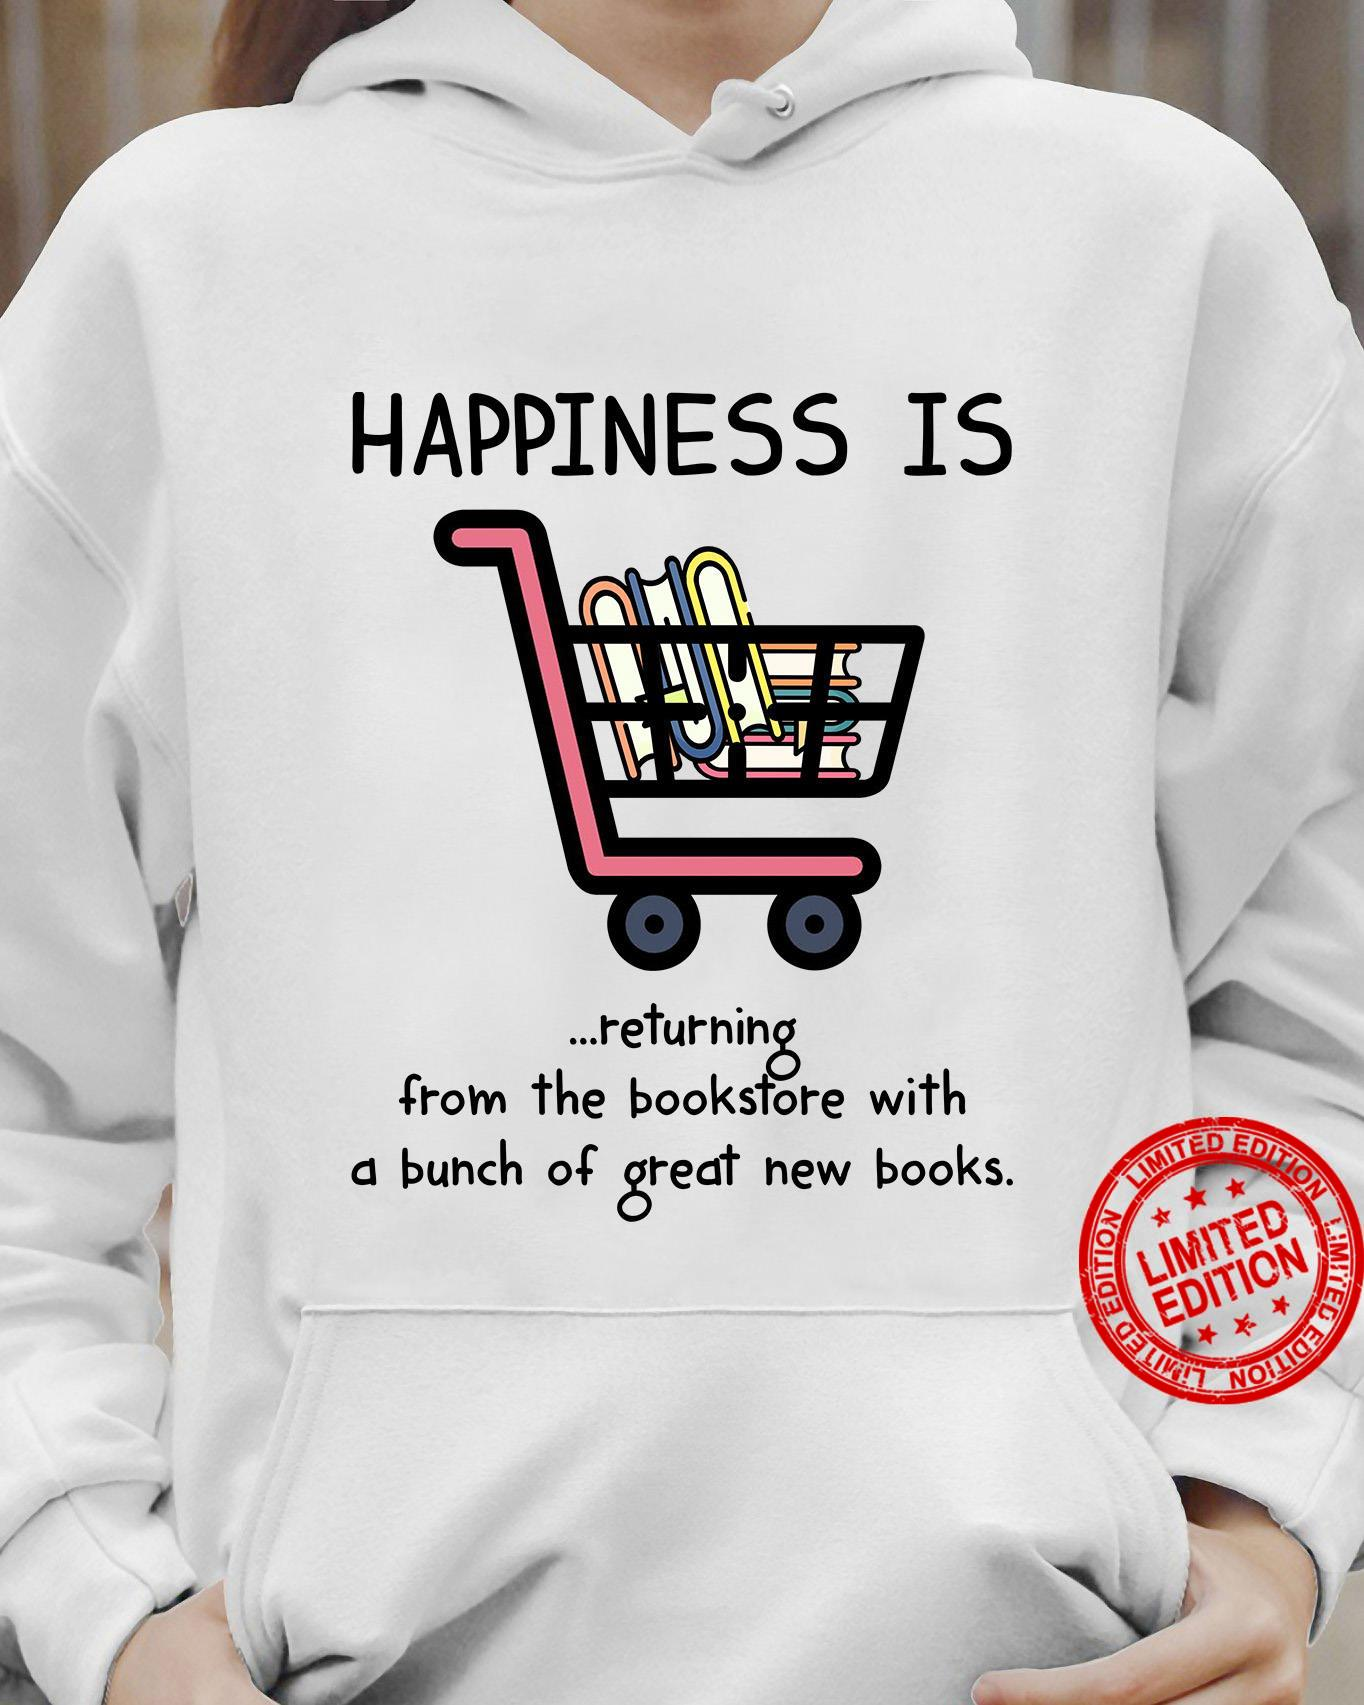 Happiness Is Returning From The Bookstore With A Bunch Of Great New Books Shirt